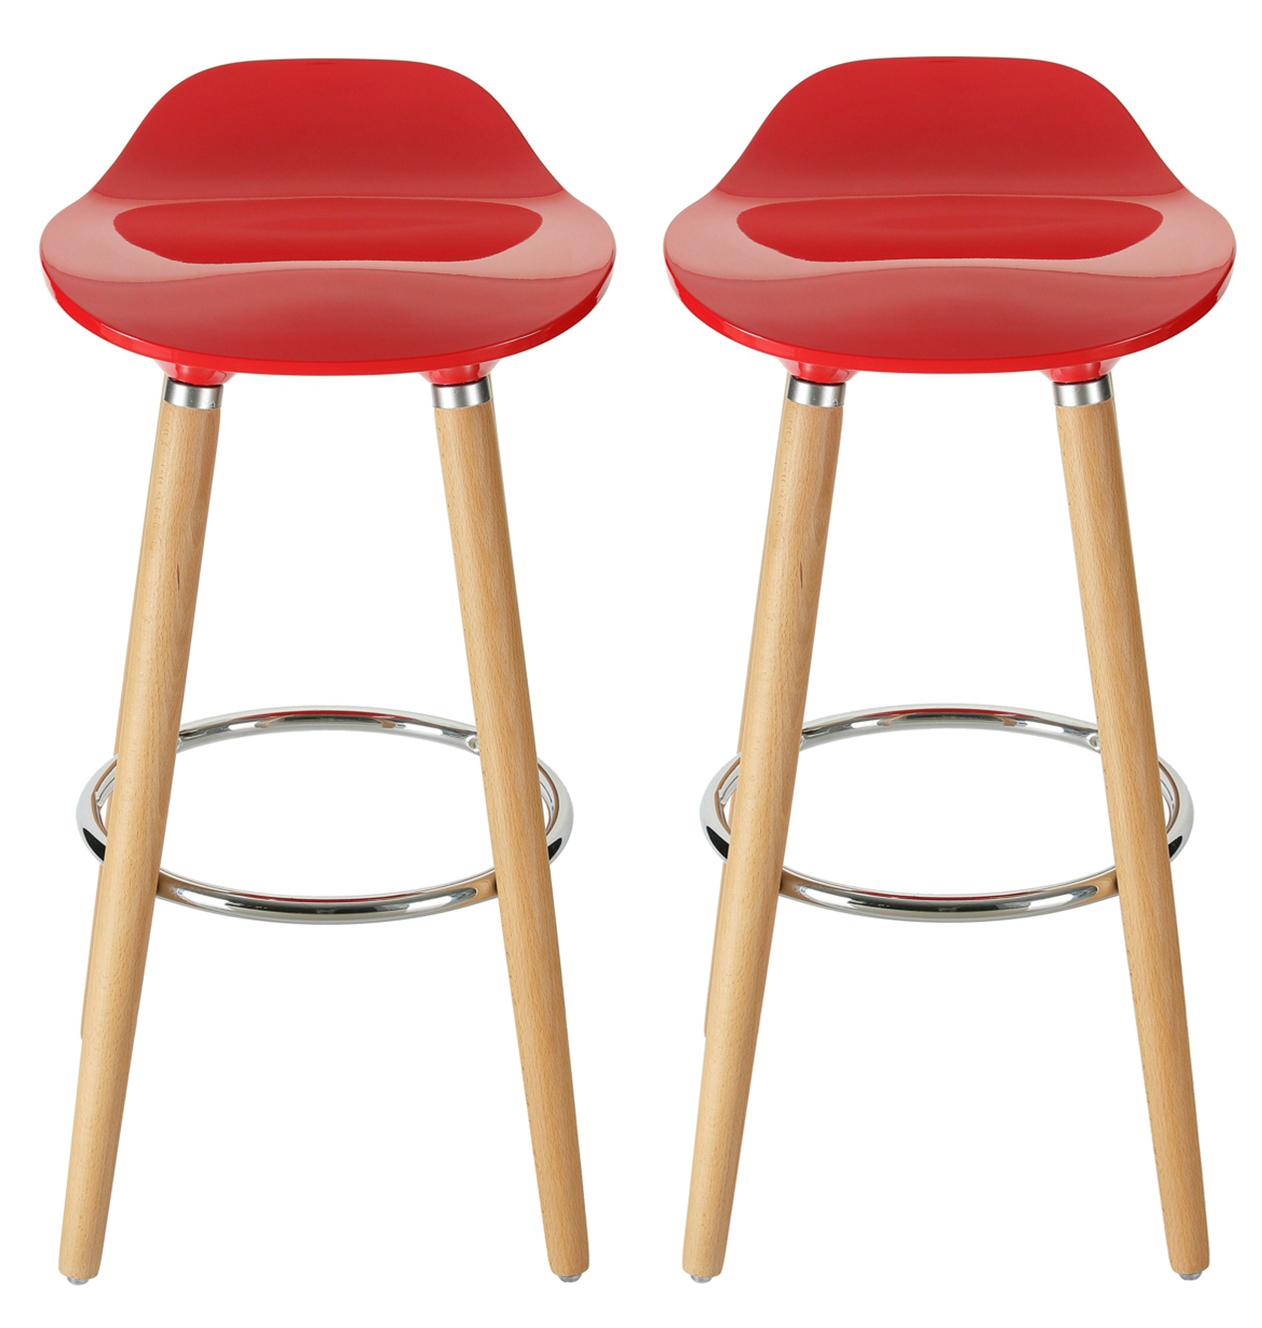 Orolay Red Kitchen Breakfast Bar Stool Abs Plastic Seat